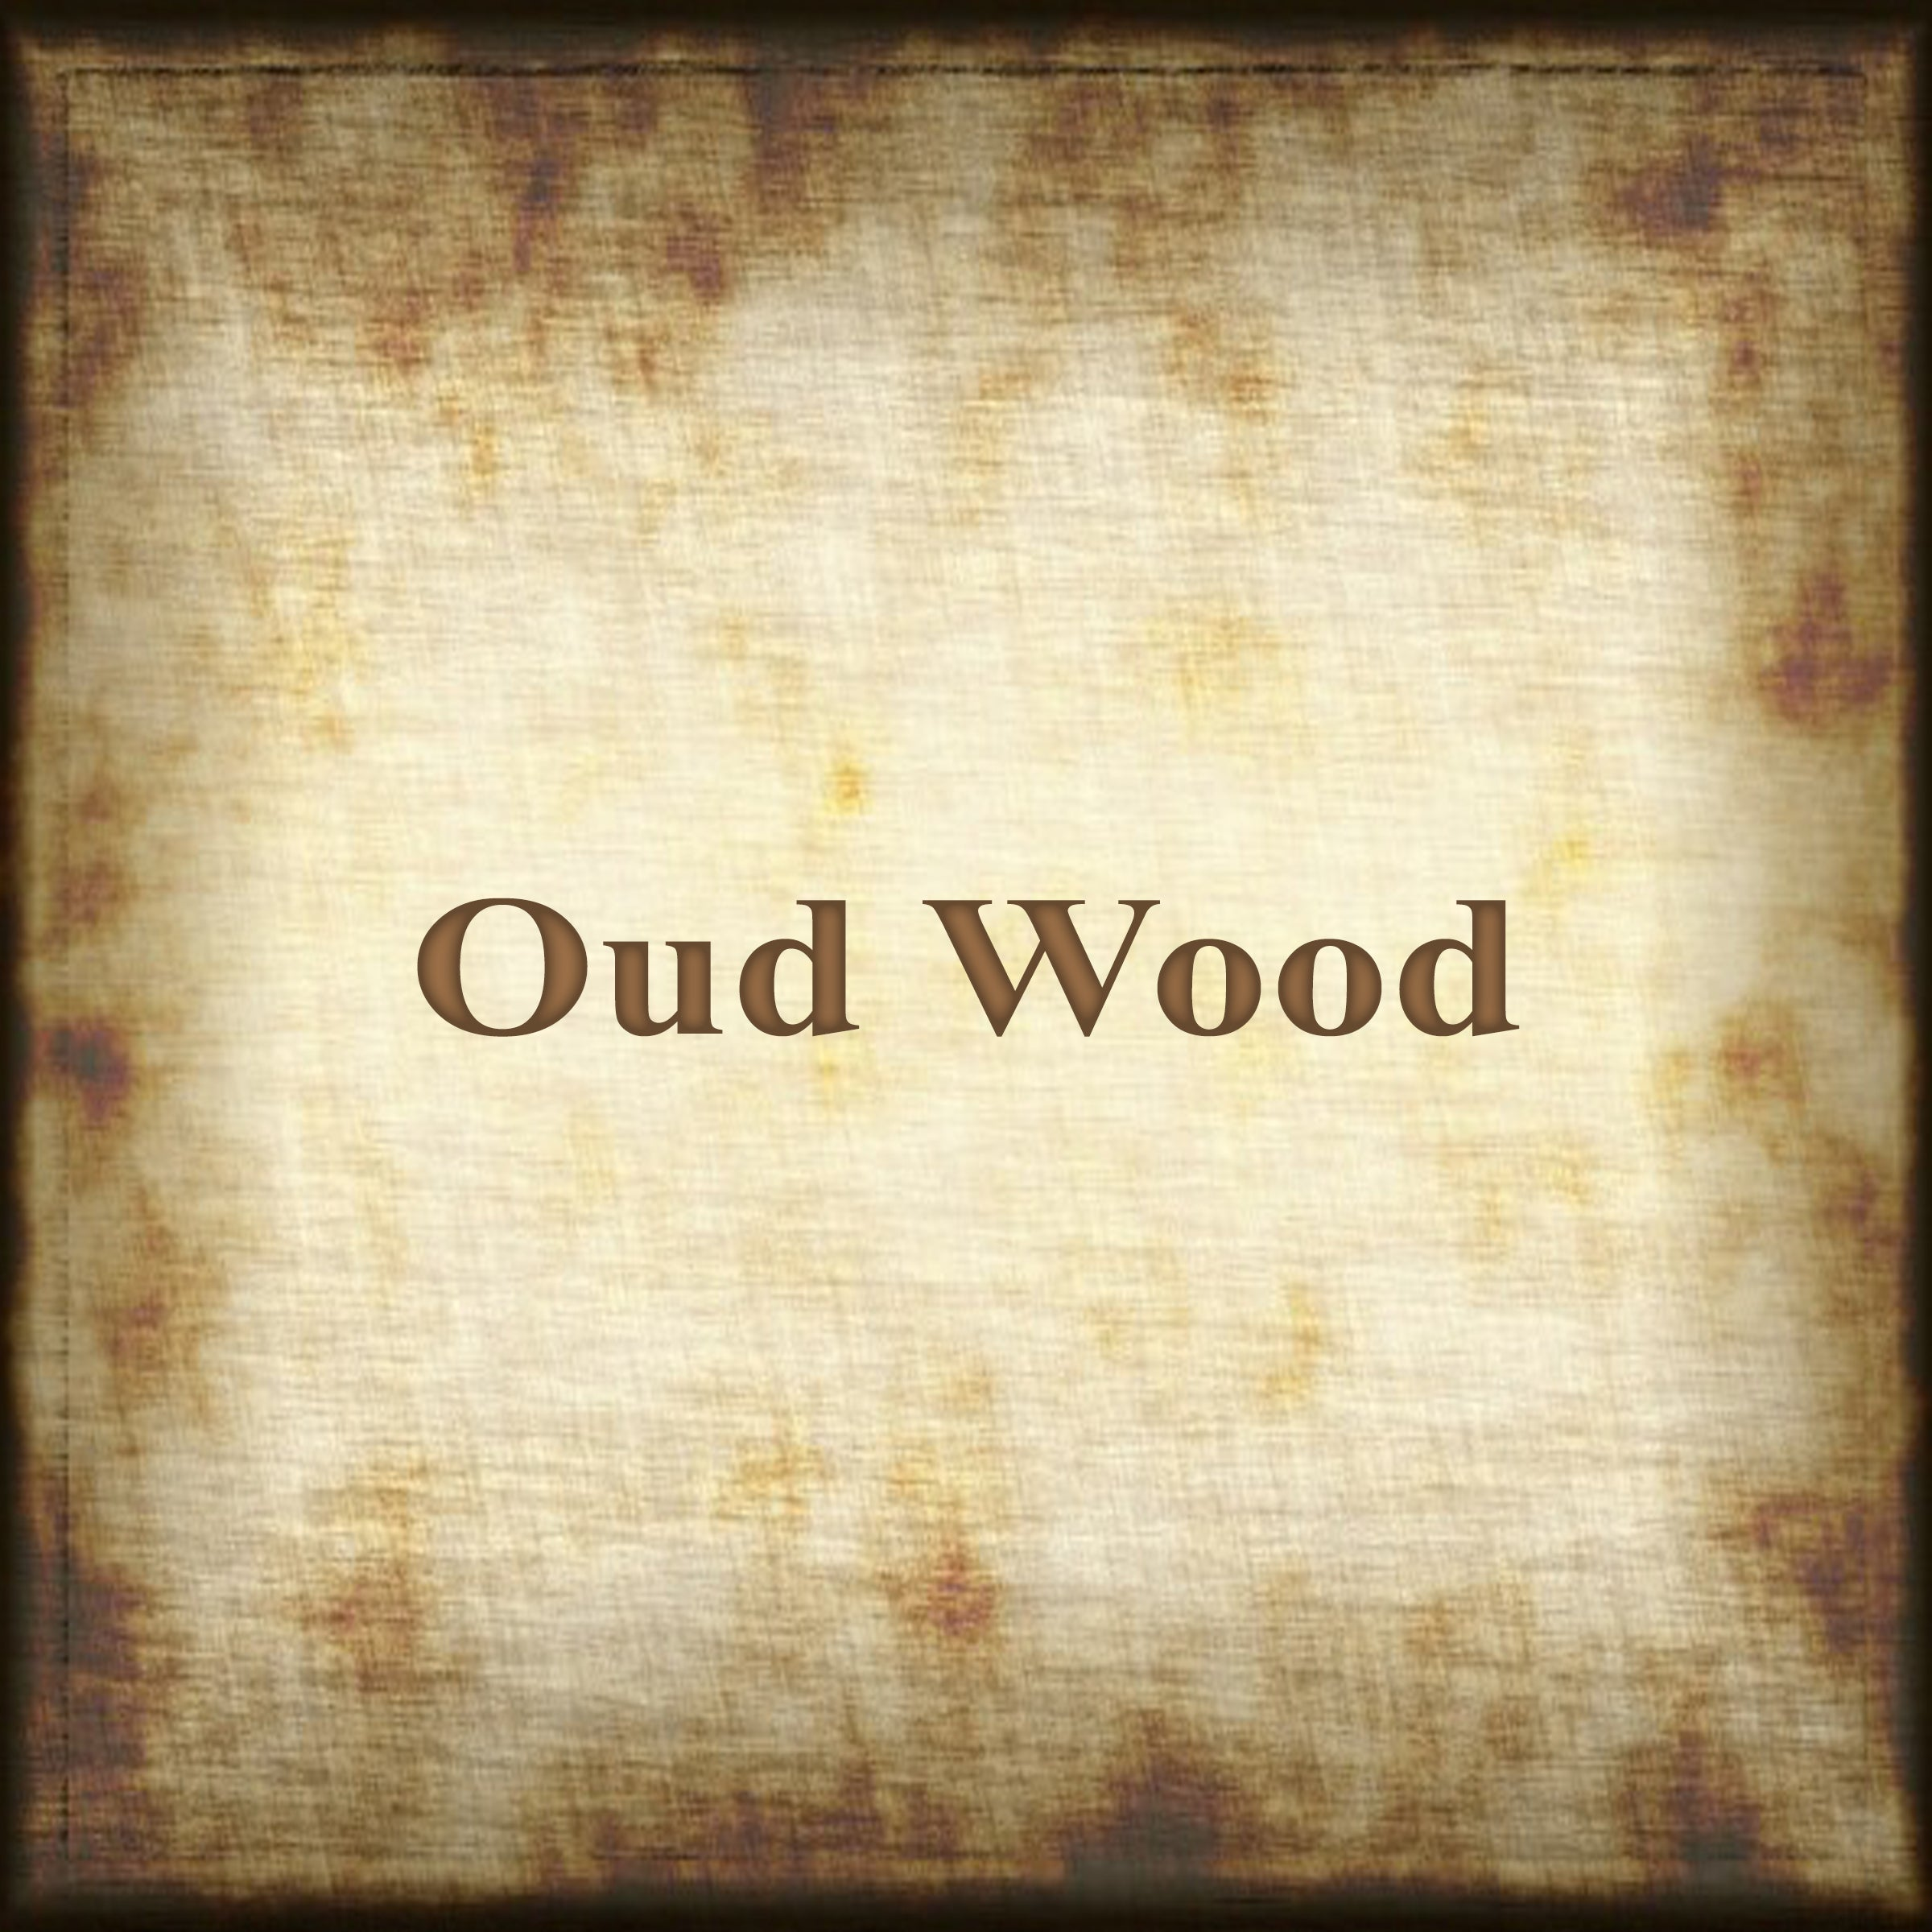 Oud Wood by Tom Ford (U)